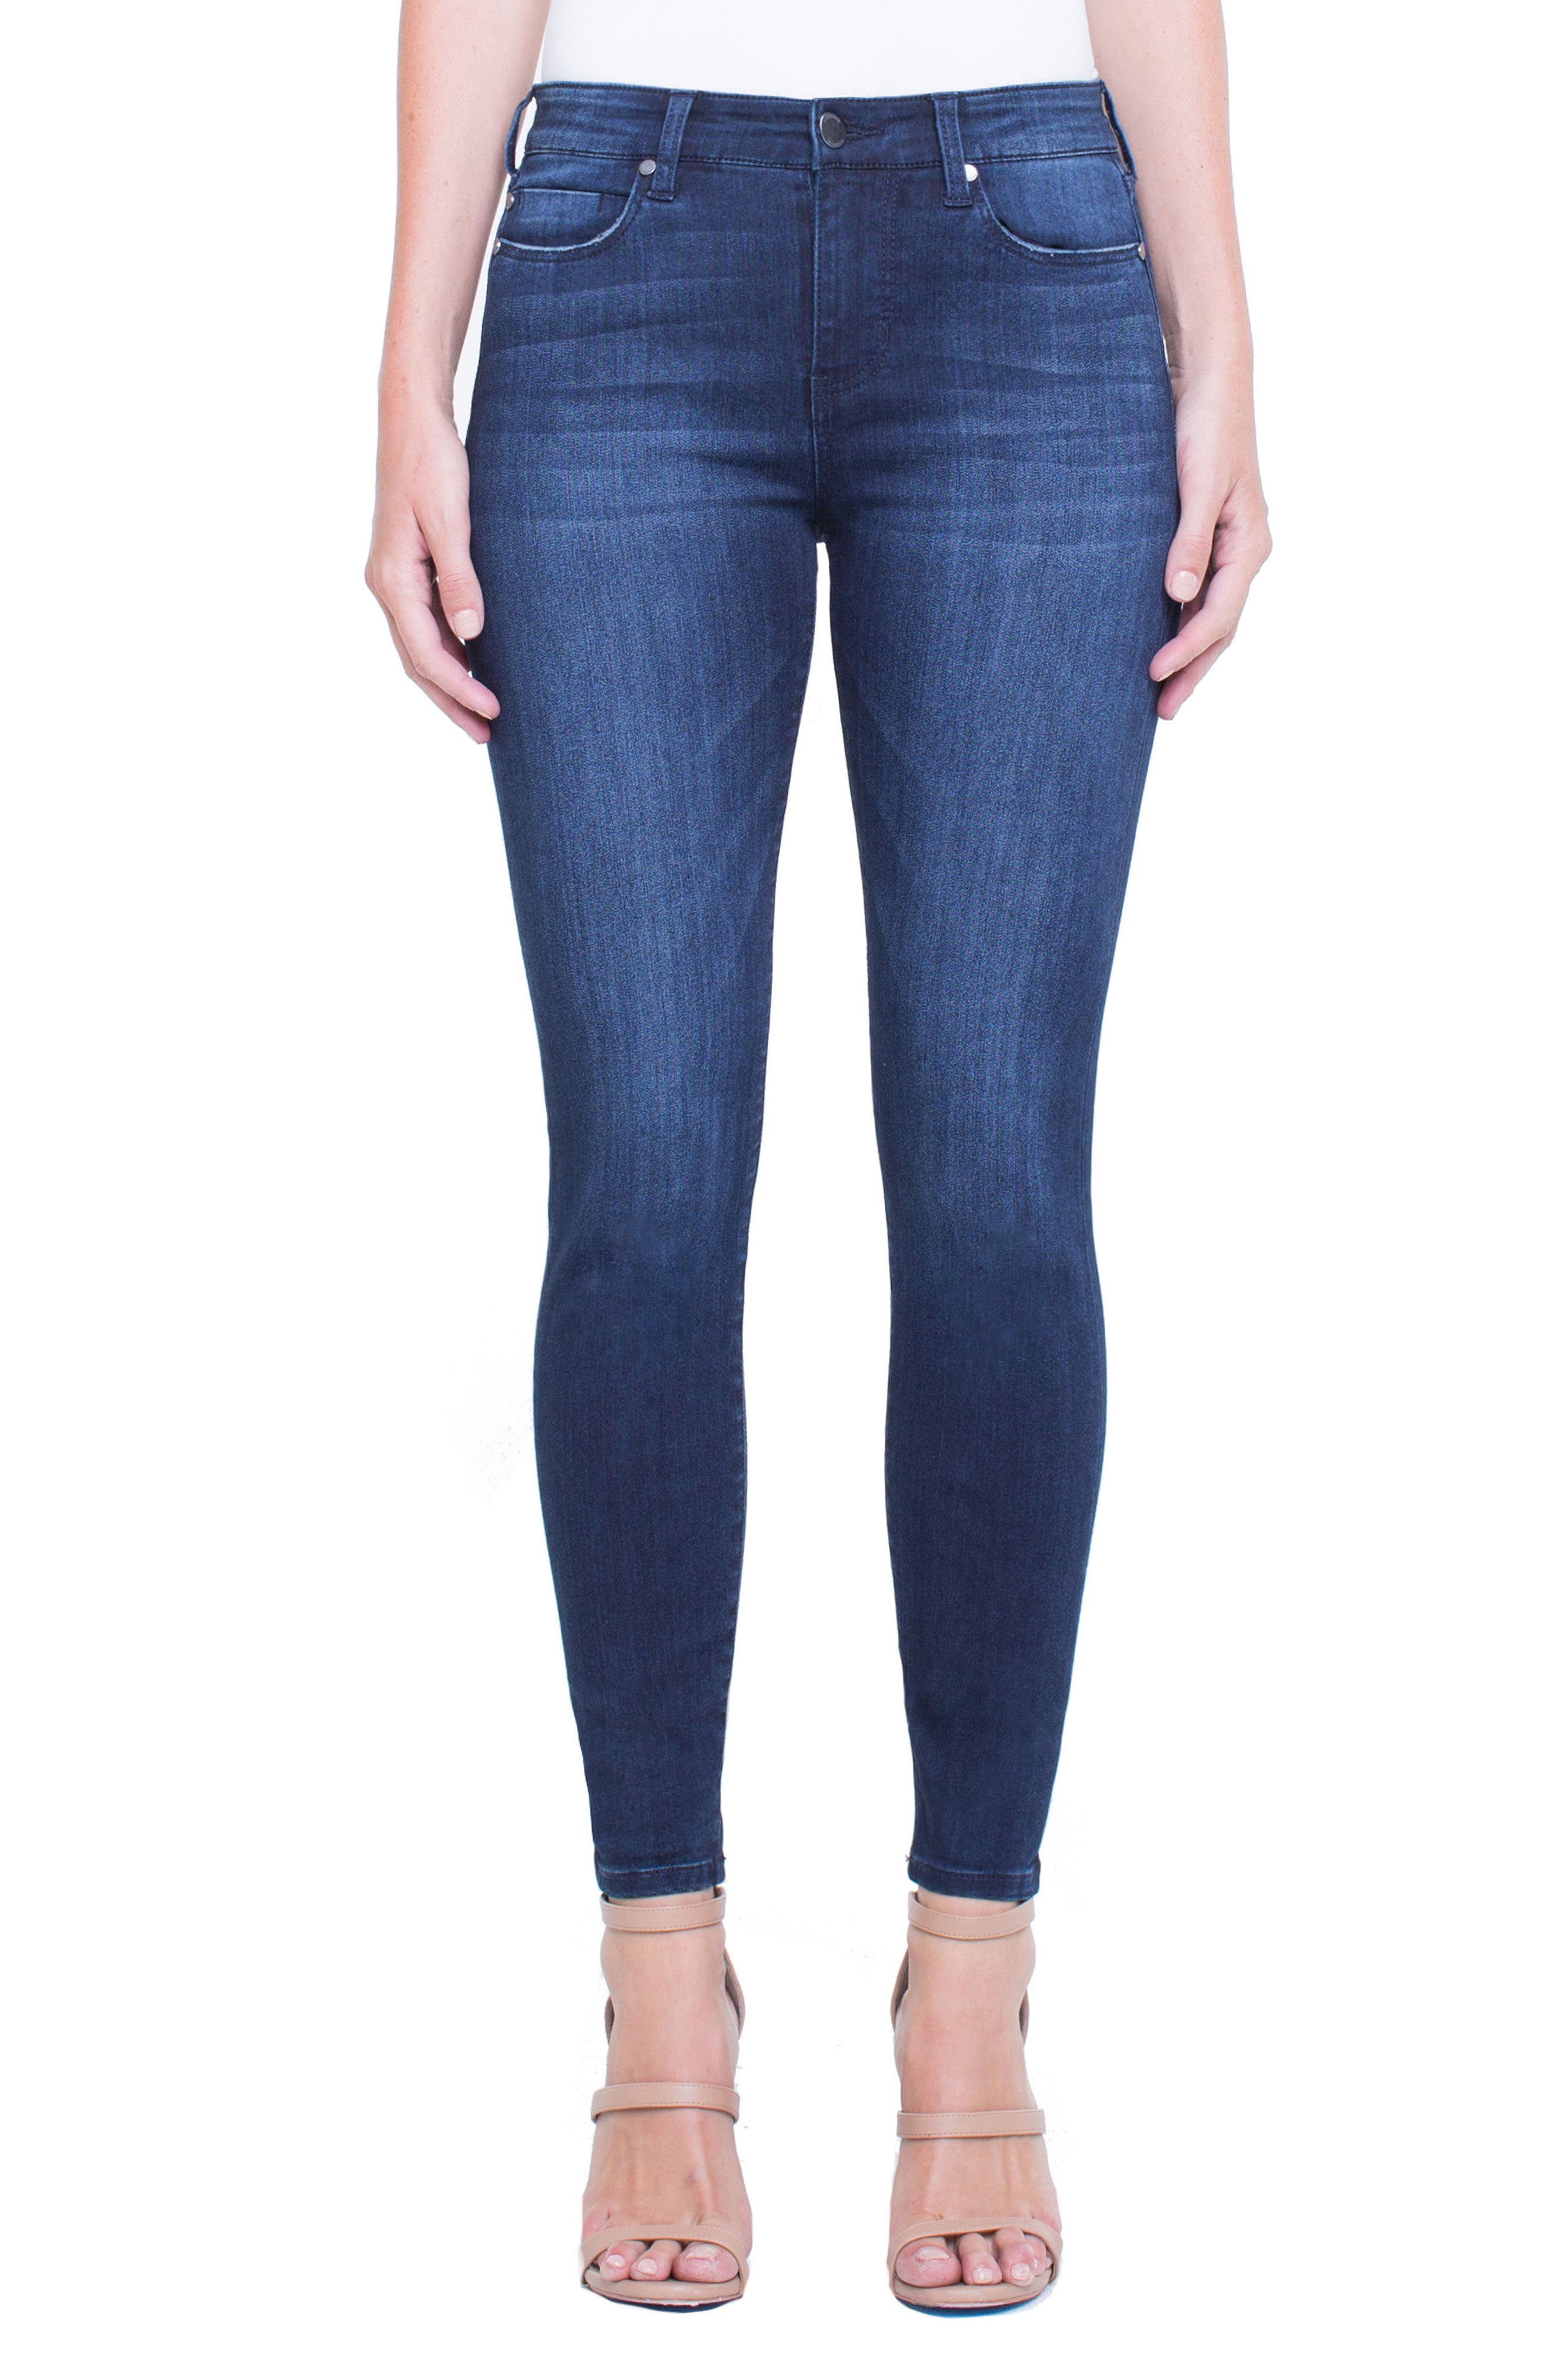 Liverpool Jeans Company Penny Ankle Skinny Jeans (Westport Wash)